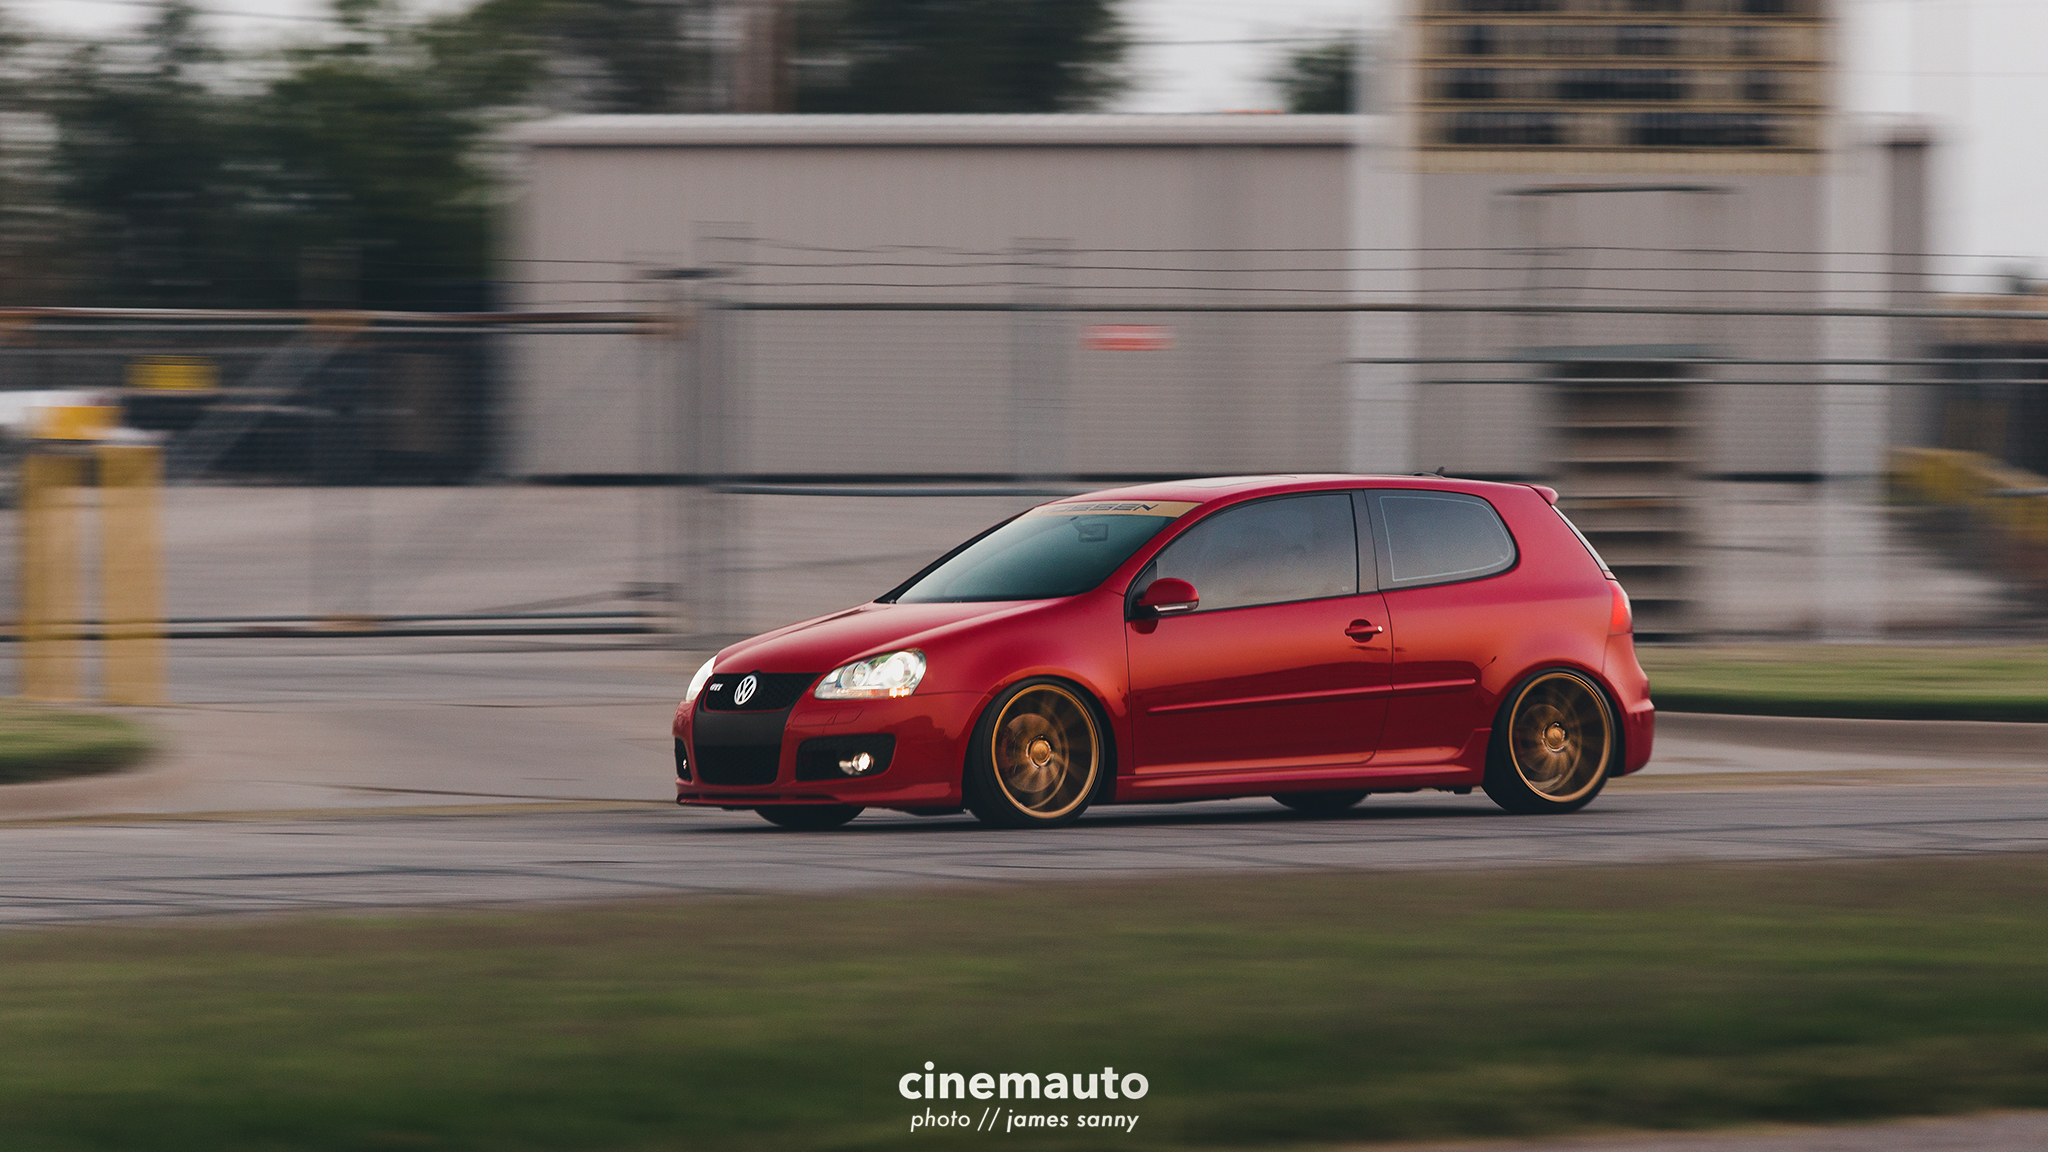 wichita-automotive-photographer-kansas-gti3.jpg